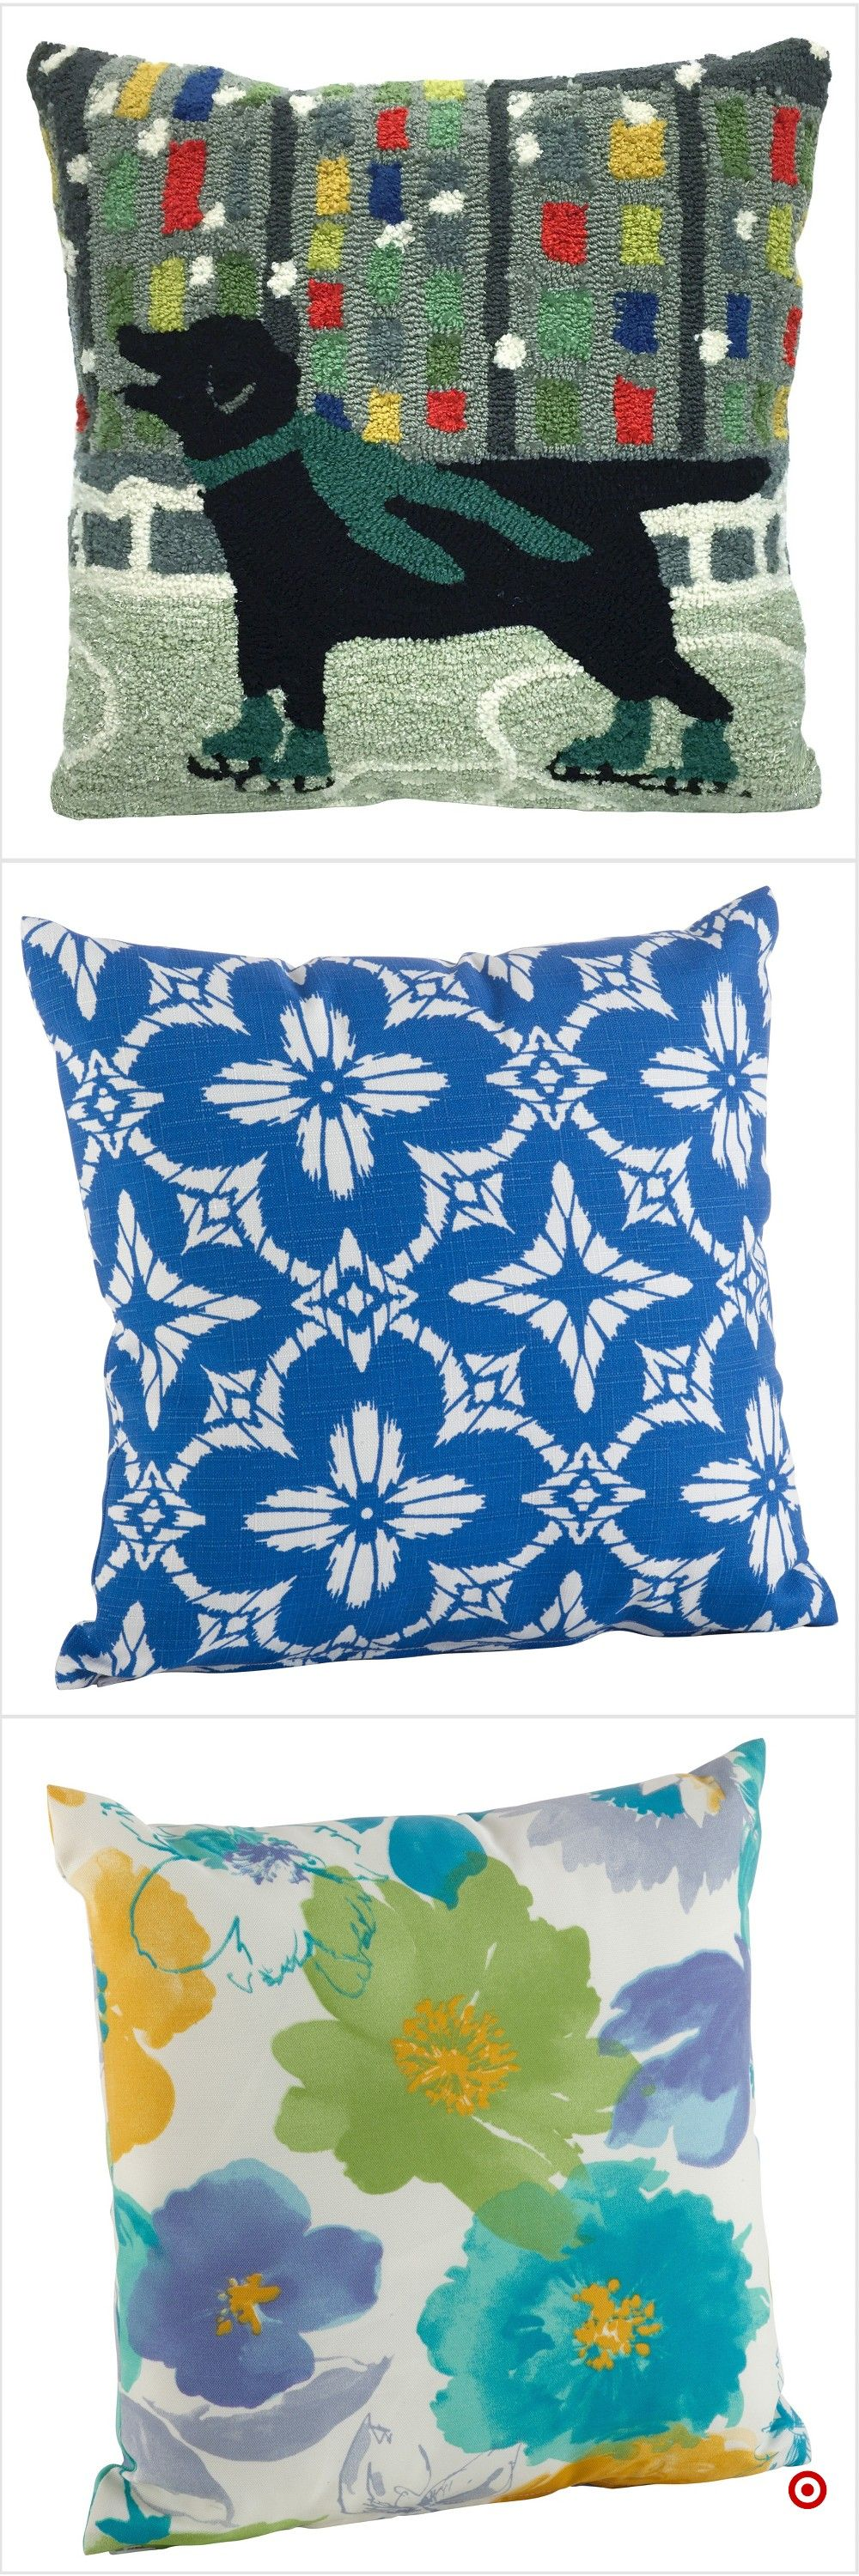 Shop Target for outdoor decorative pillow you will love at